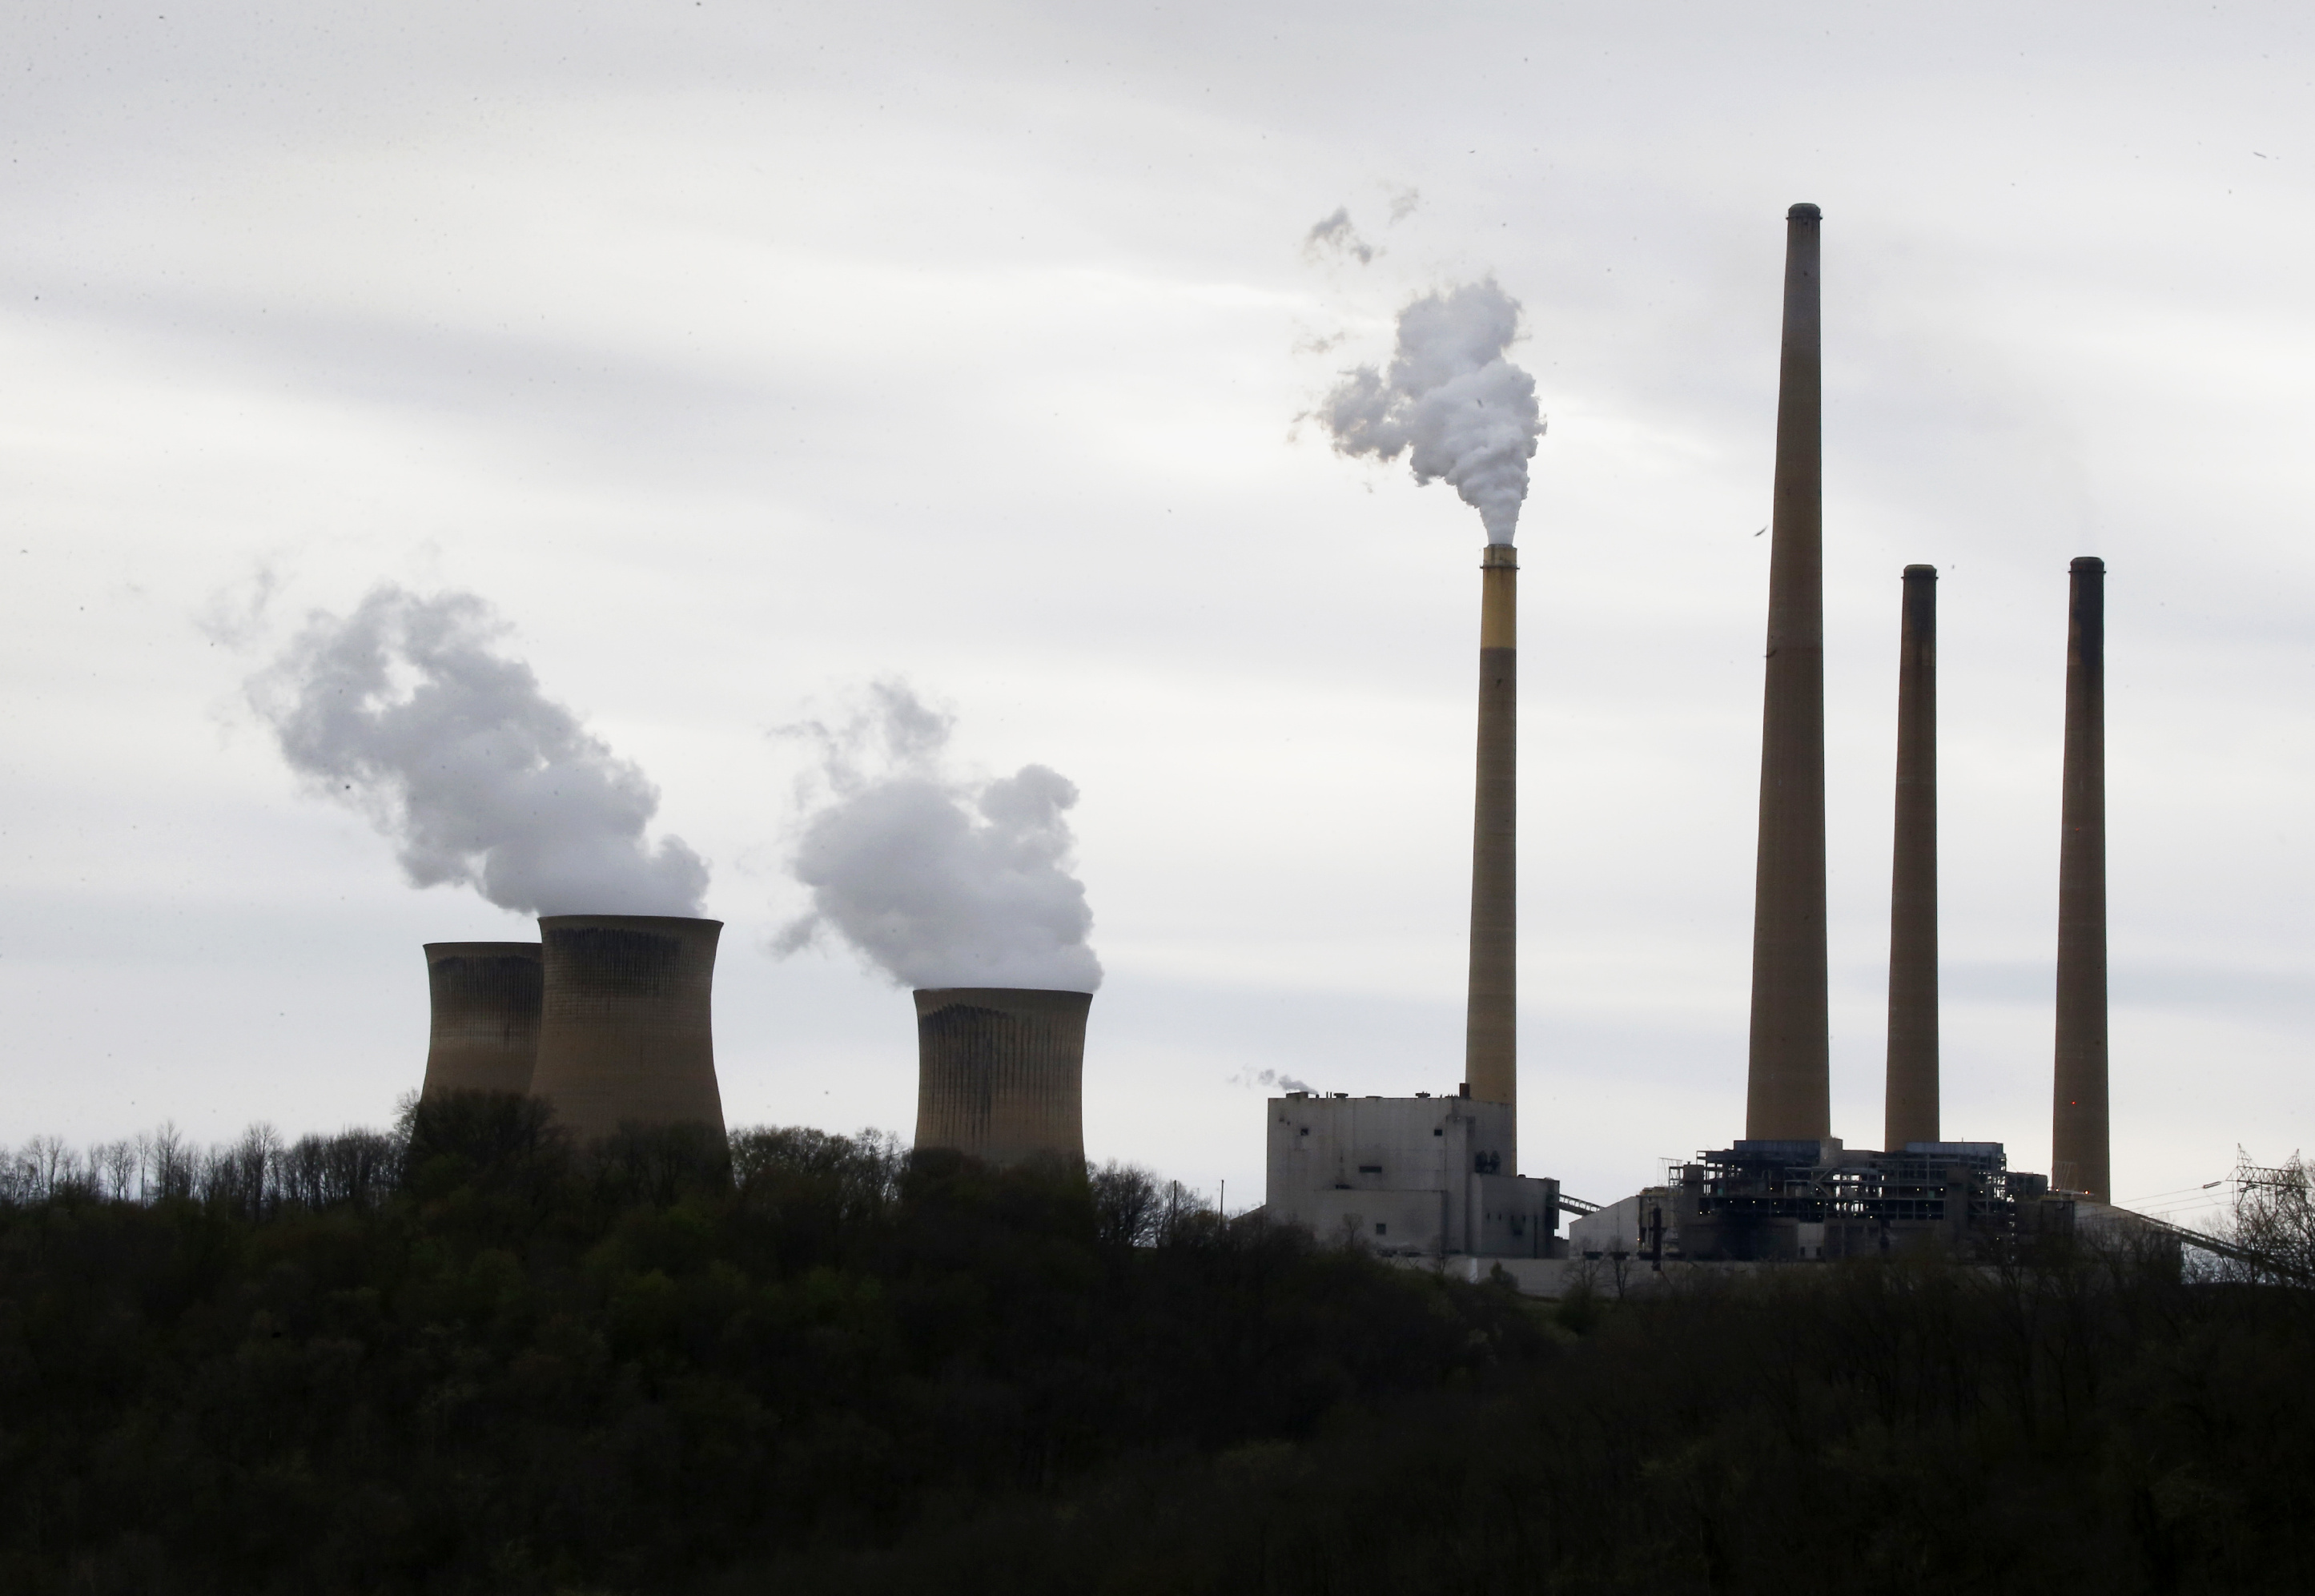 Poster Child Coal Generator Embodies Pollution Challenge The